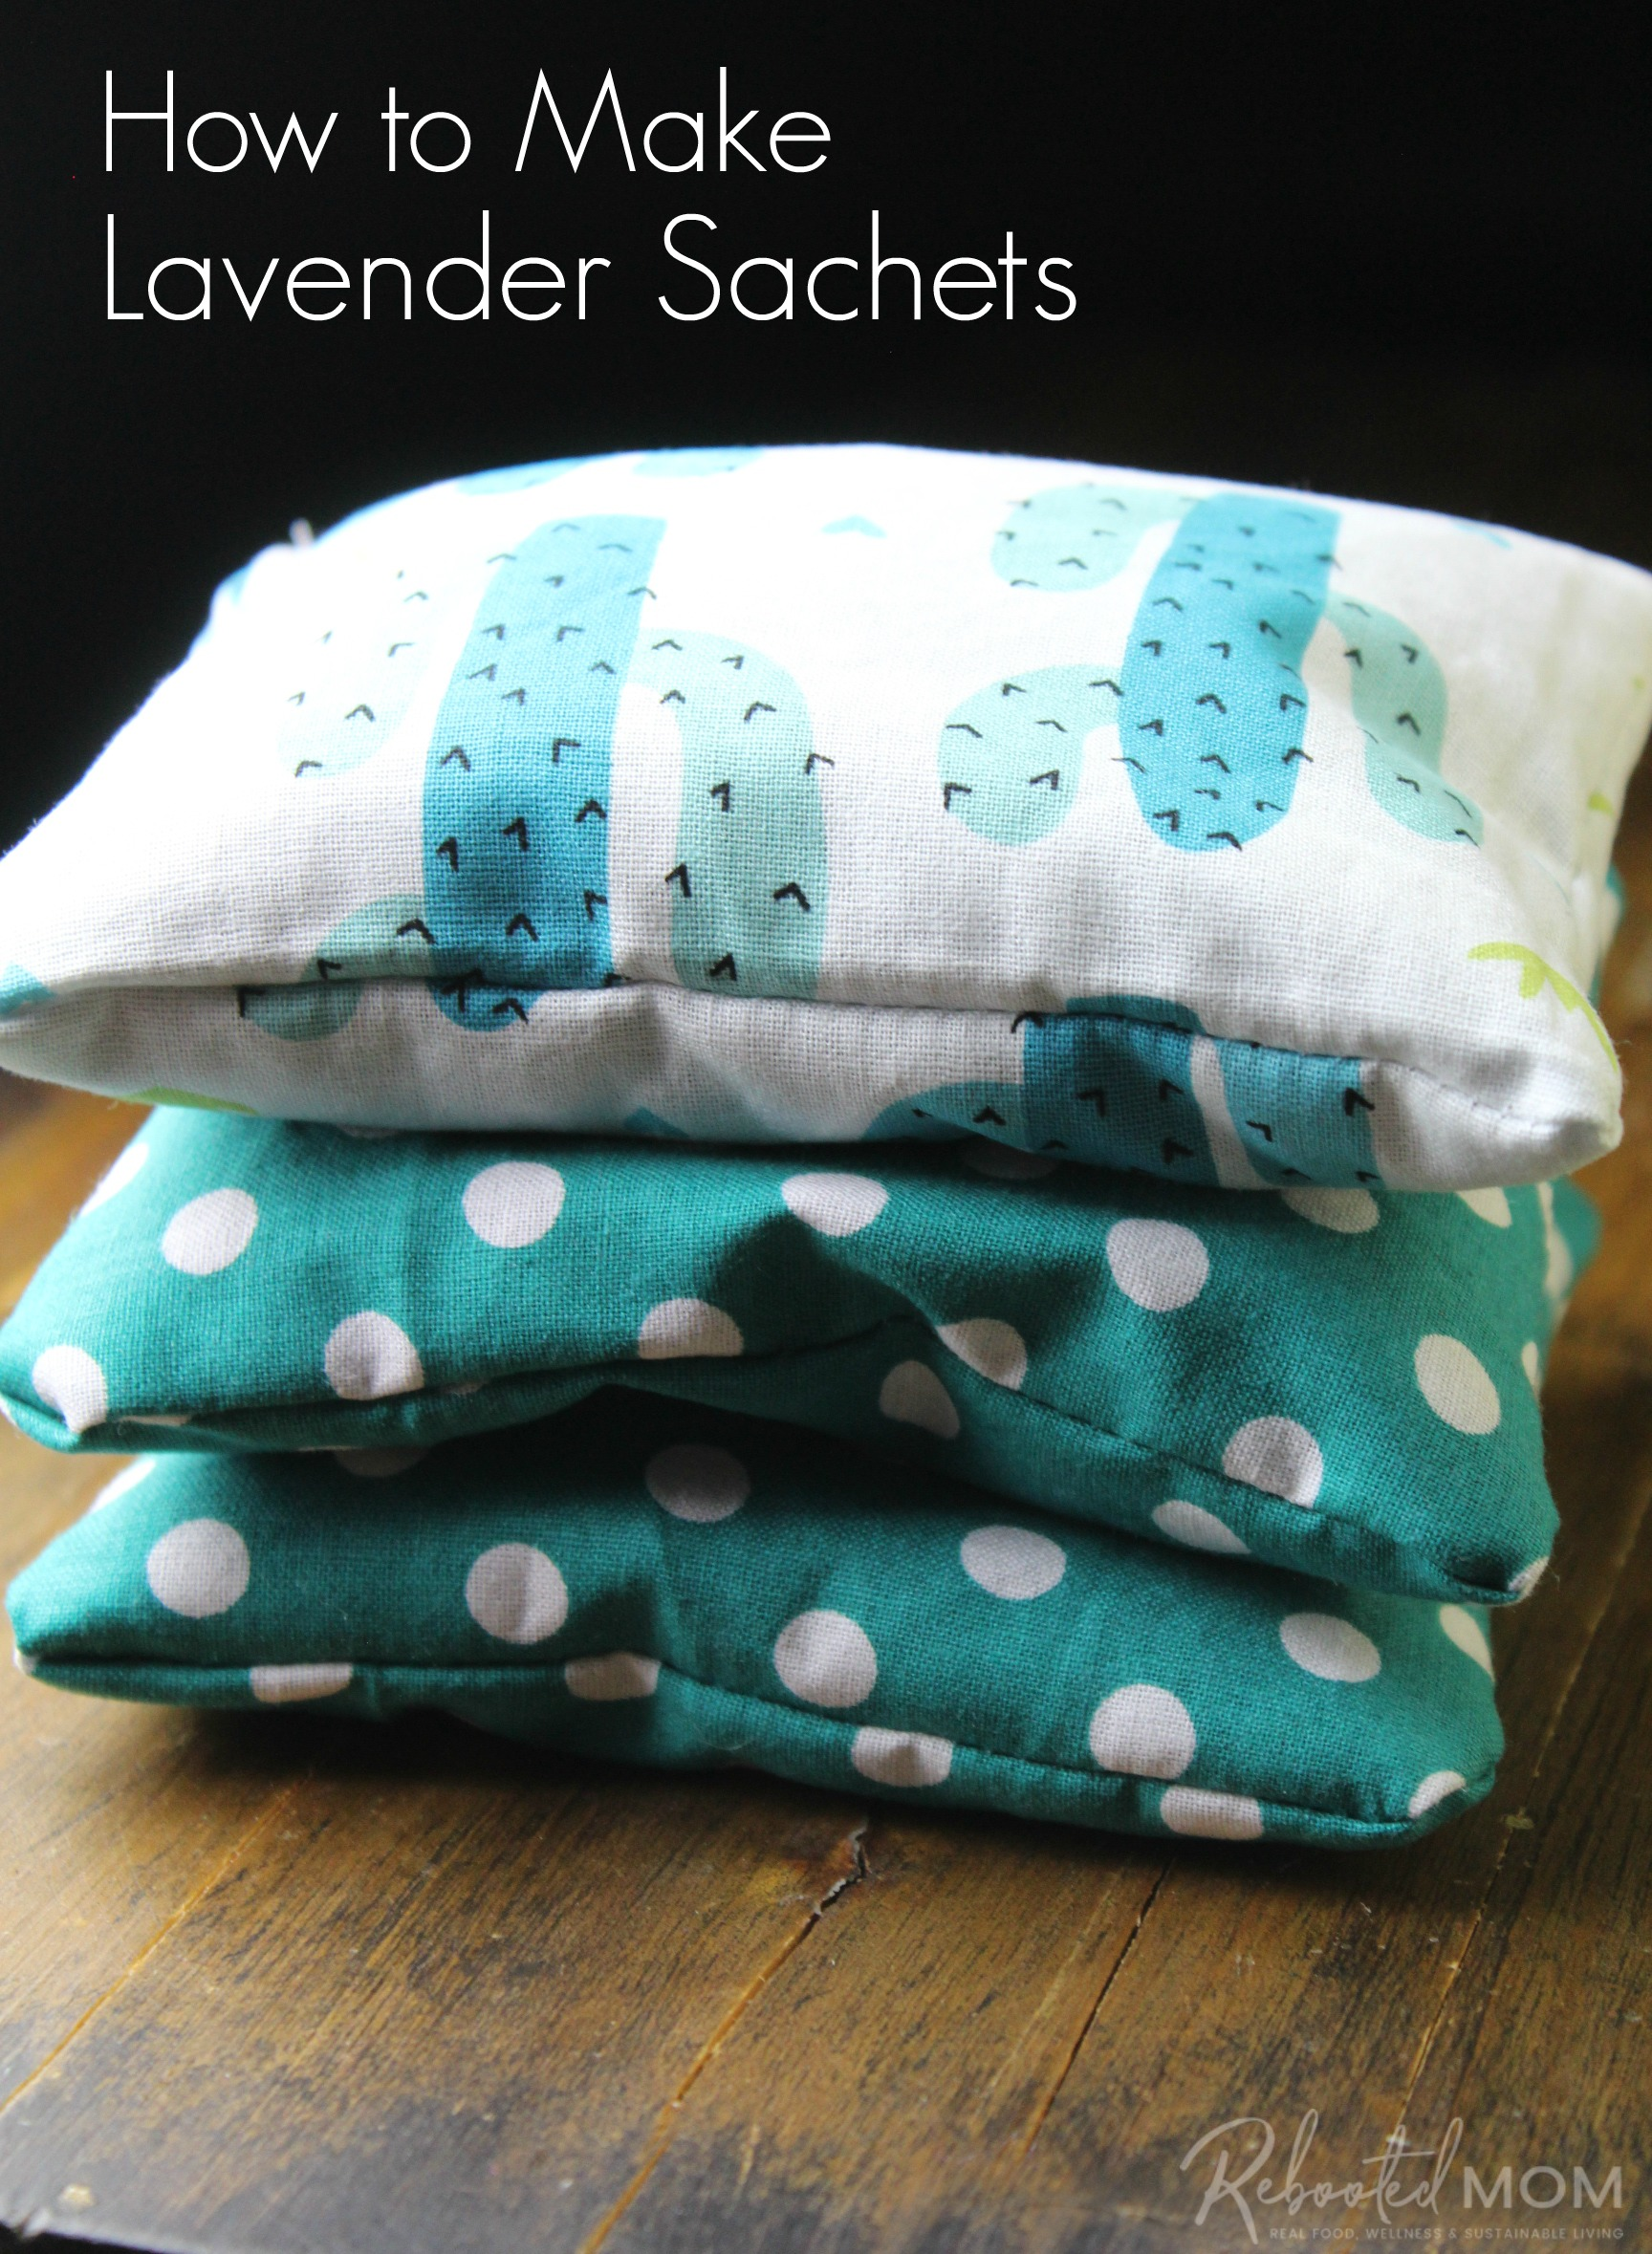 Learn how to sew and fill these lavender sachets with this easy tutorial. Make your own sachets to gift using simple scrap fabric and dried lavender.